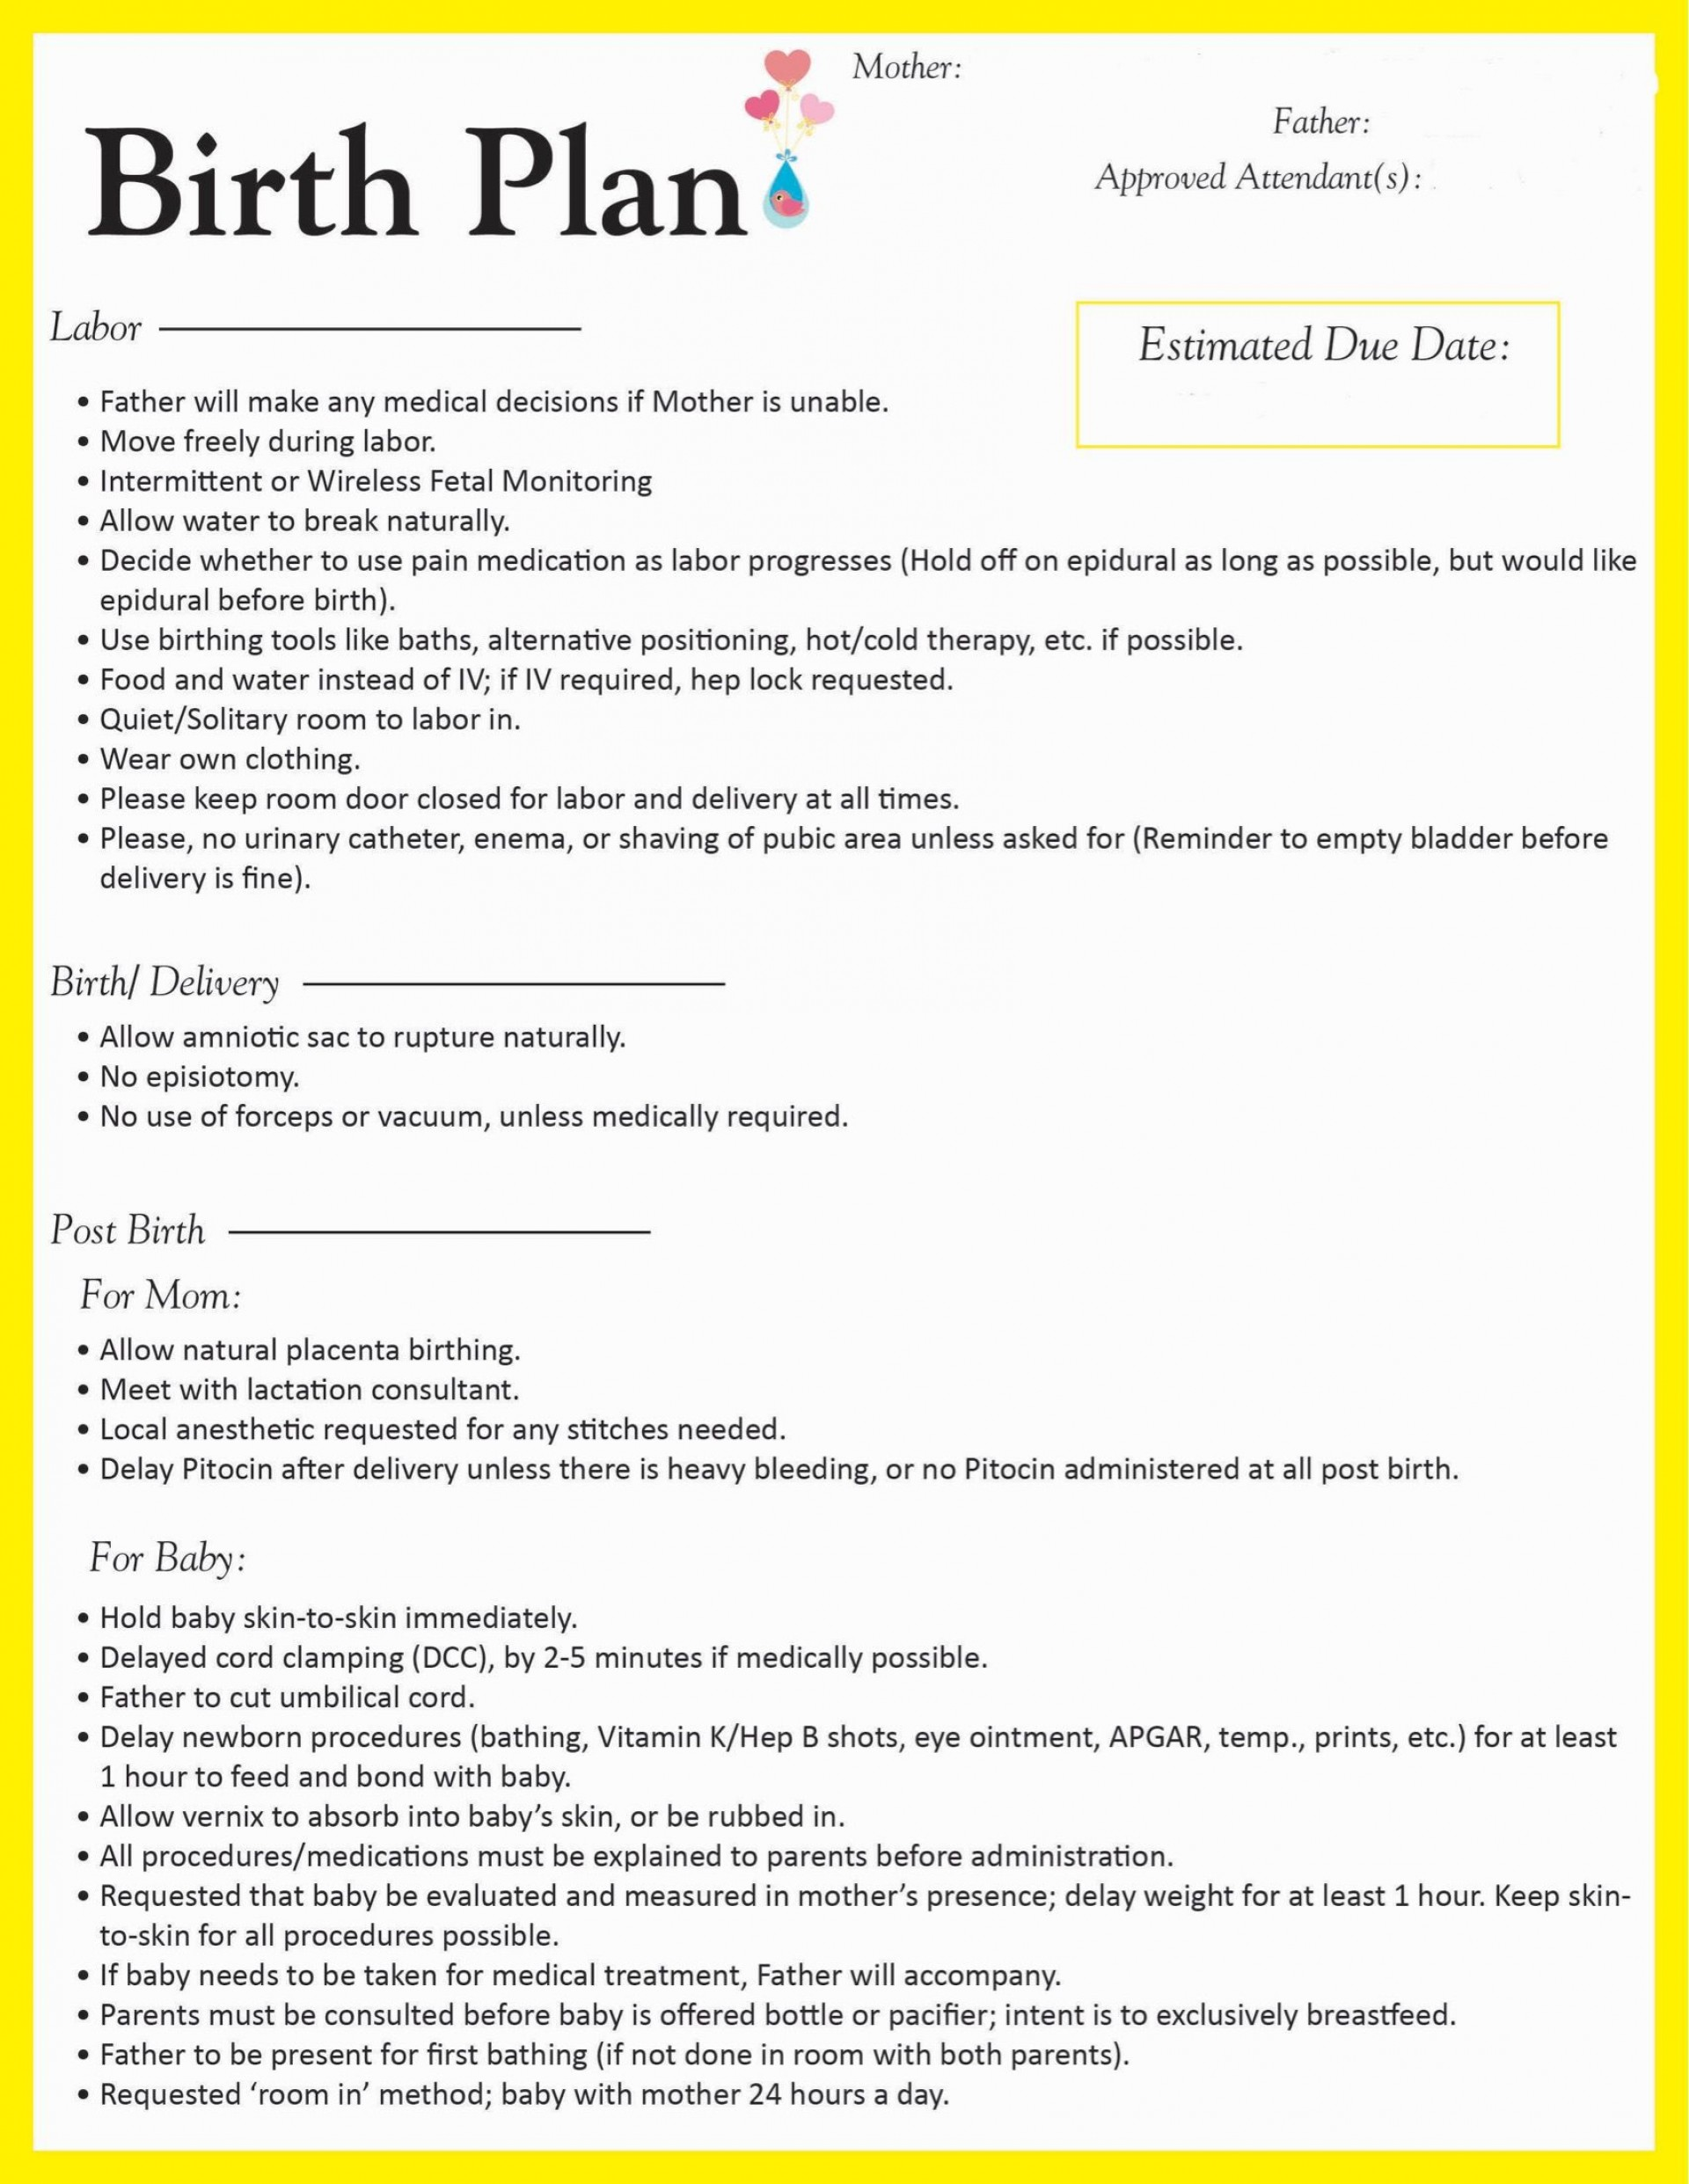 003 Fantastic One Page Birth Plan Template Sample  Simple Pdf1920